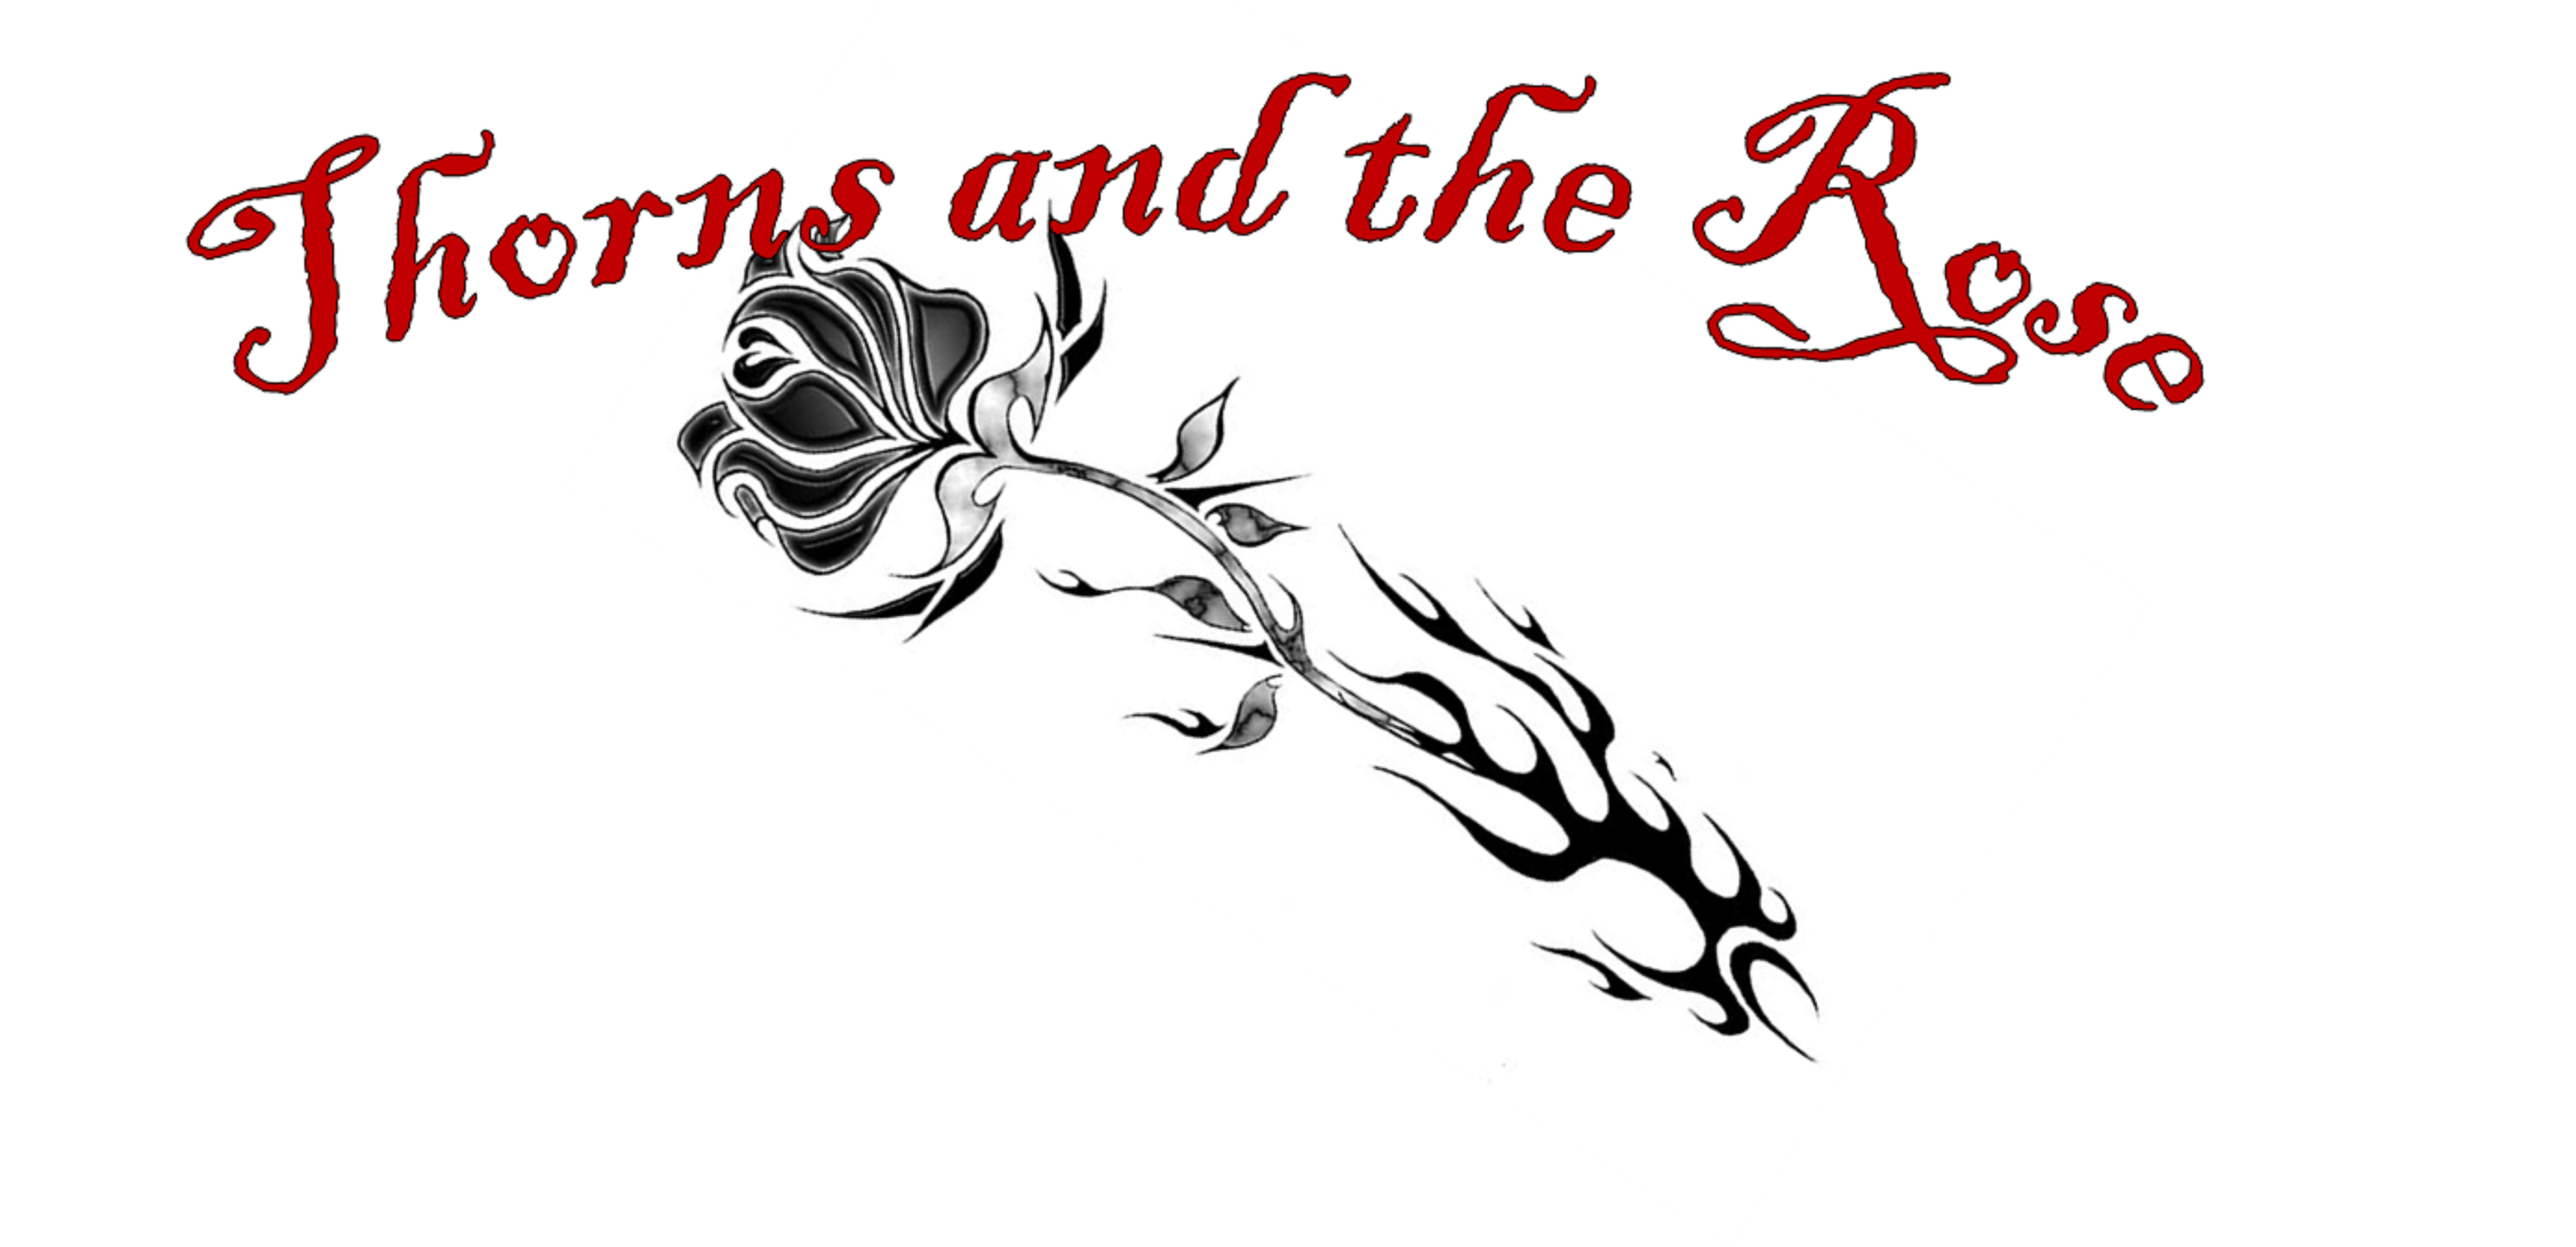 Thorns and the Rose